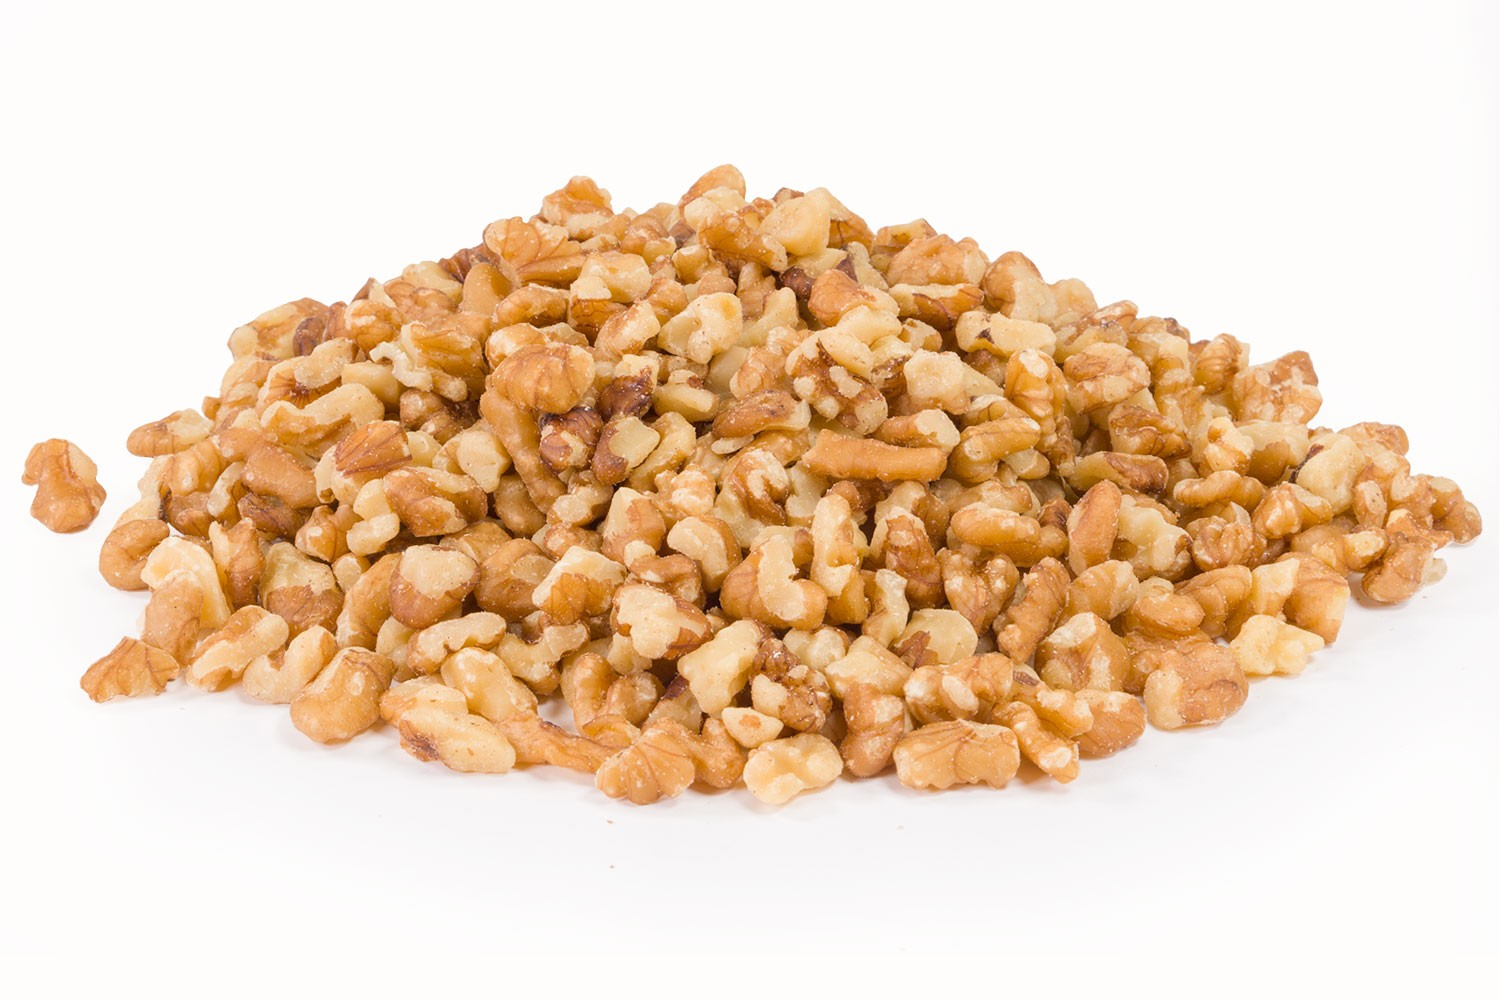 Medium Chopped Walnuts